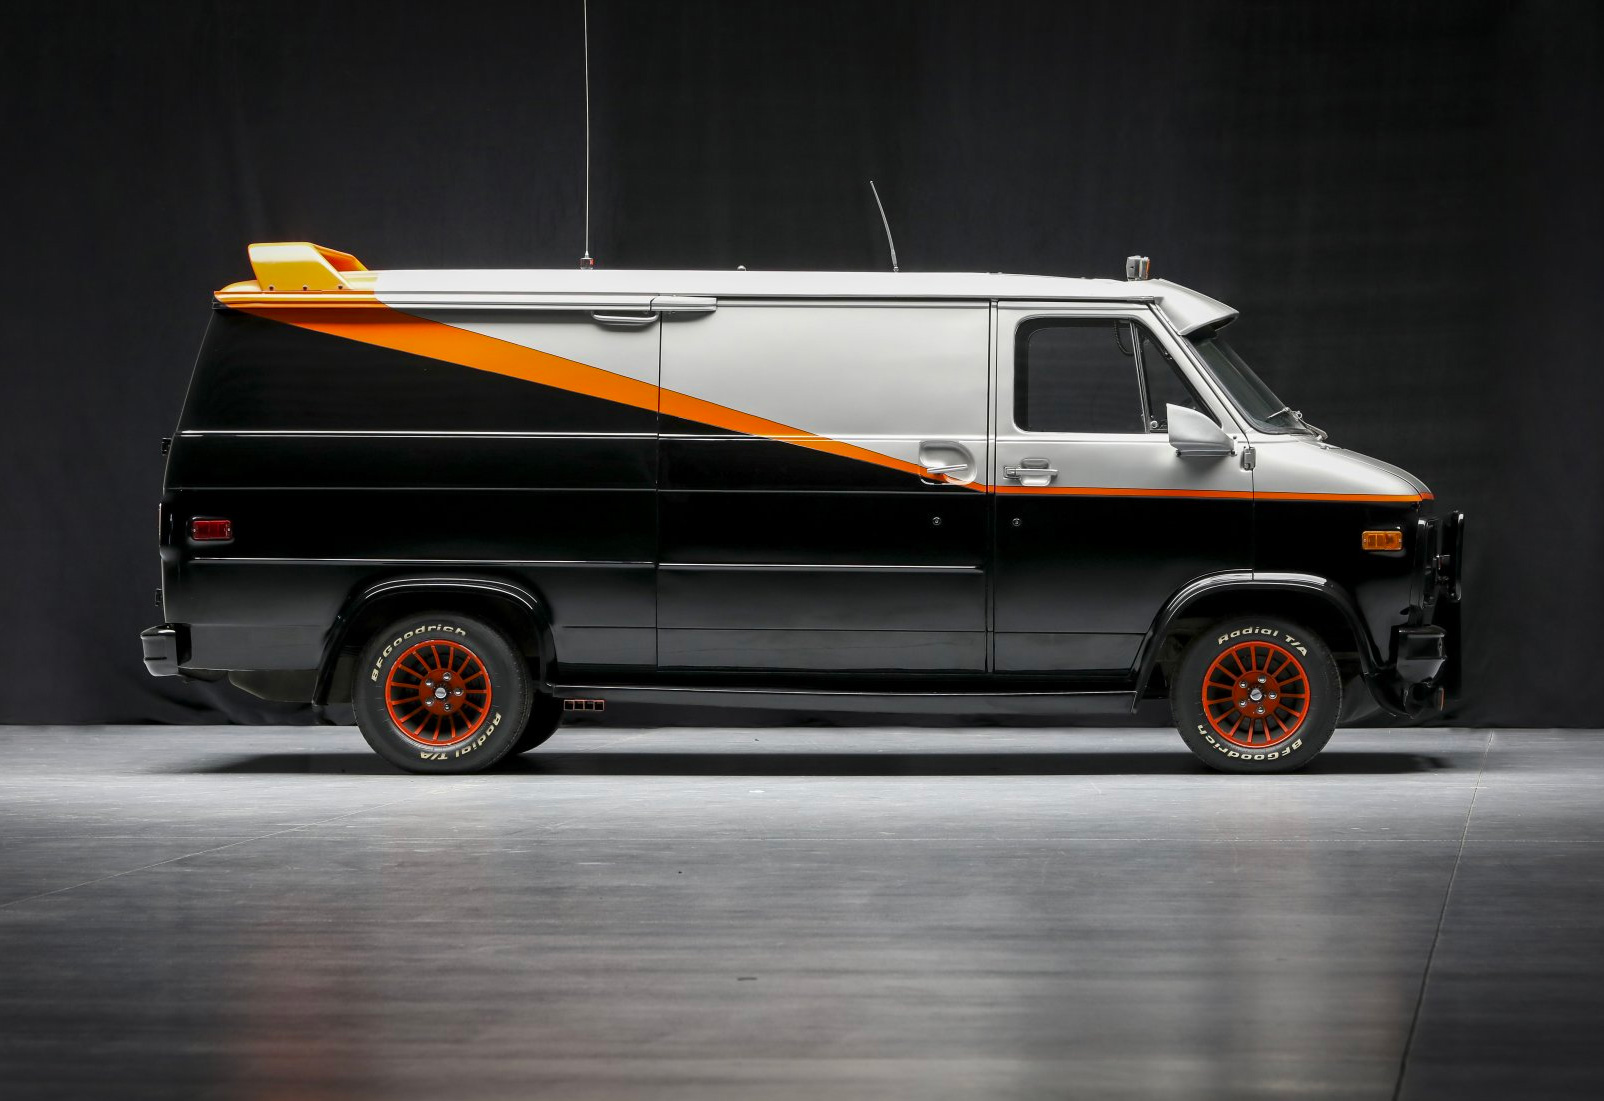 Original A-Team Van Goes Up for Auction at werd.com